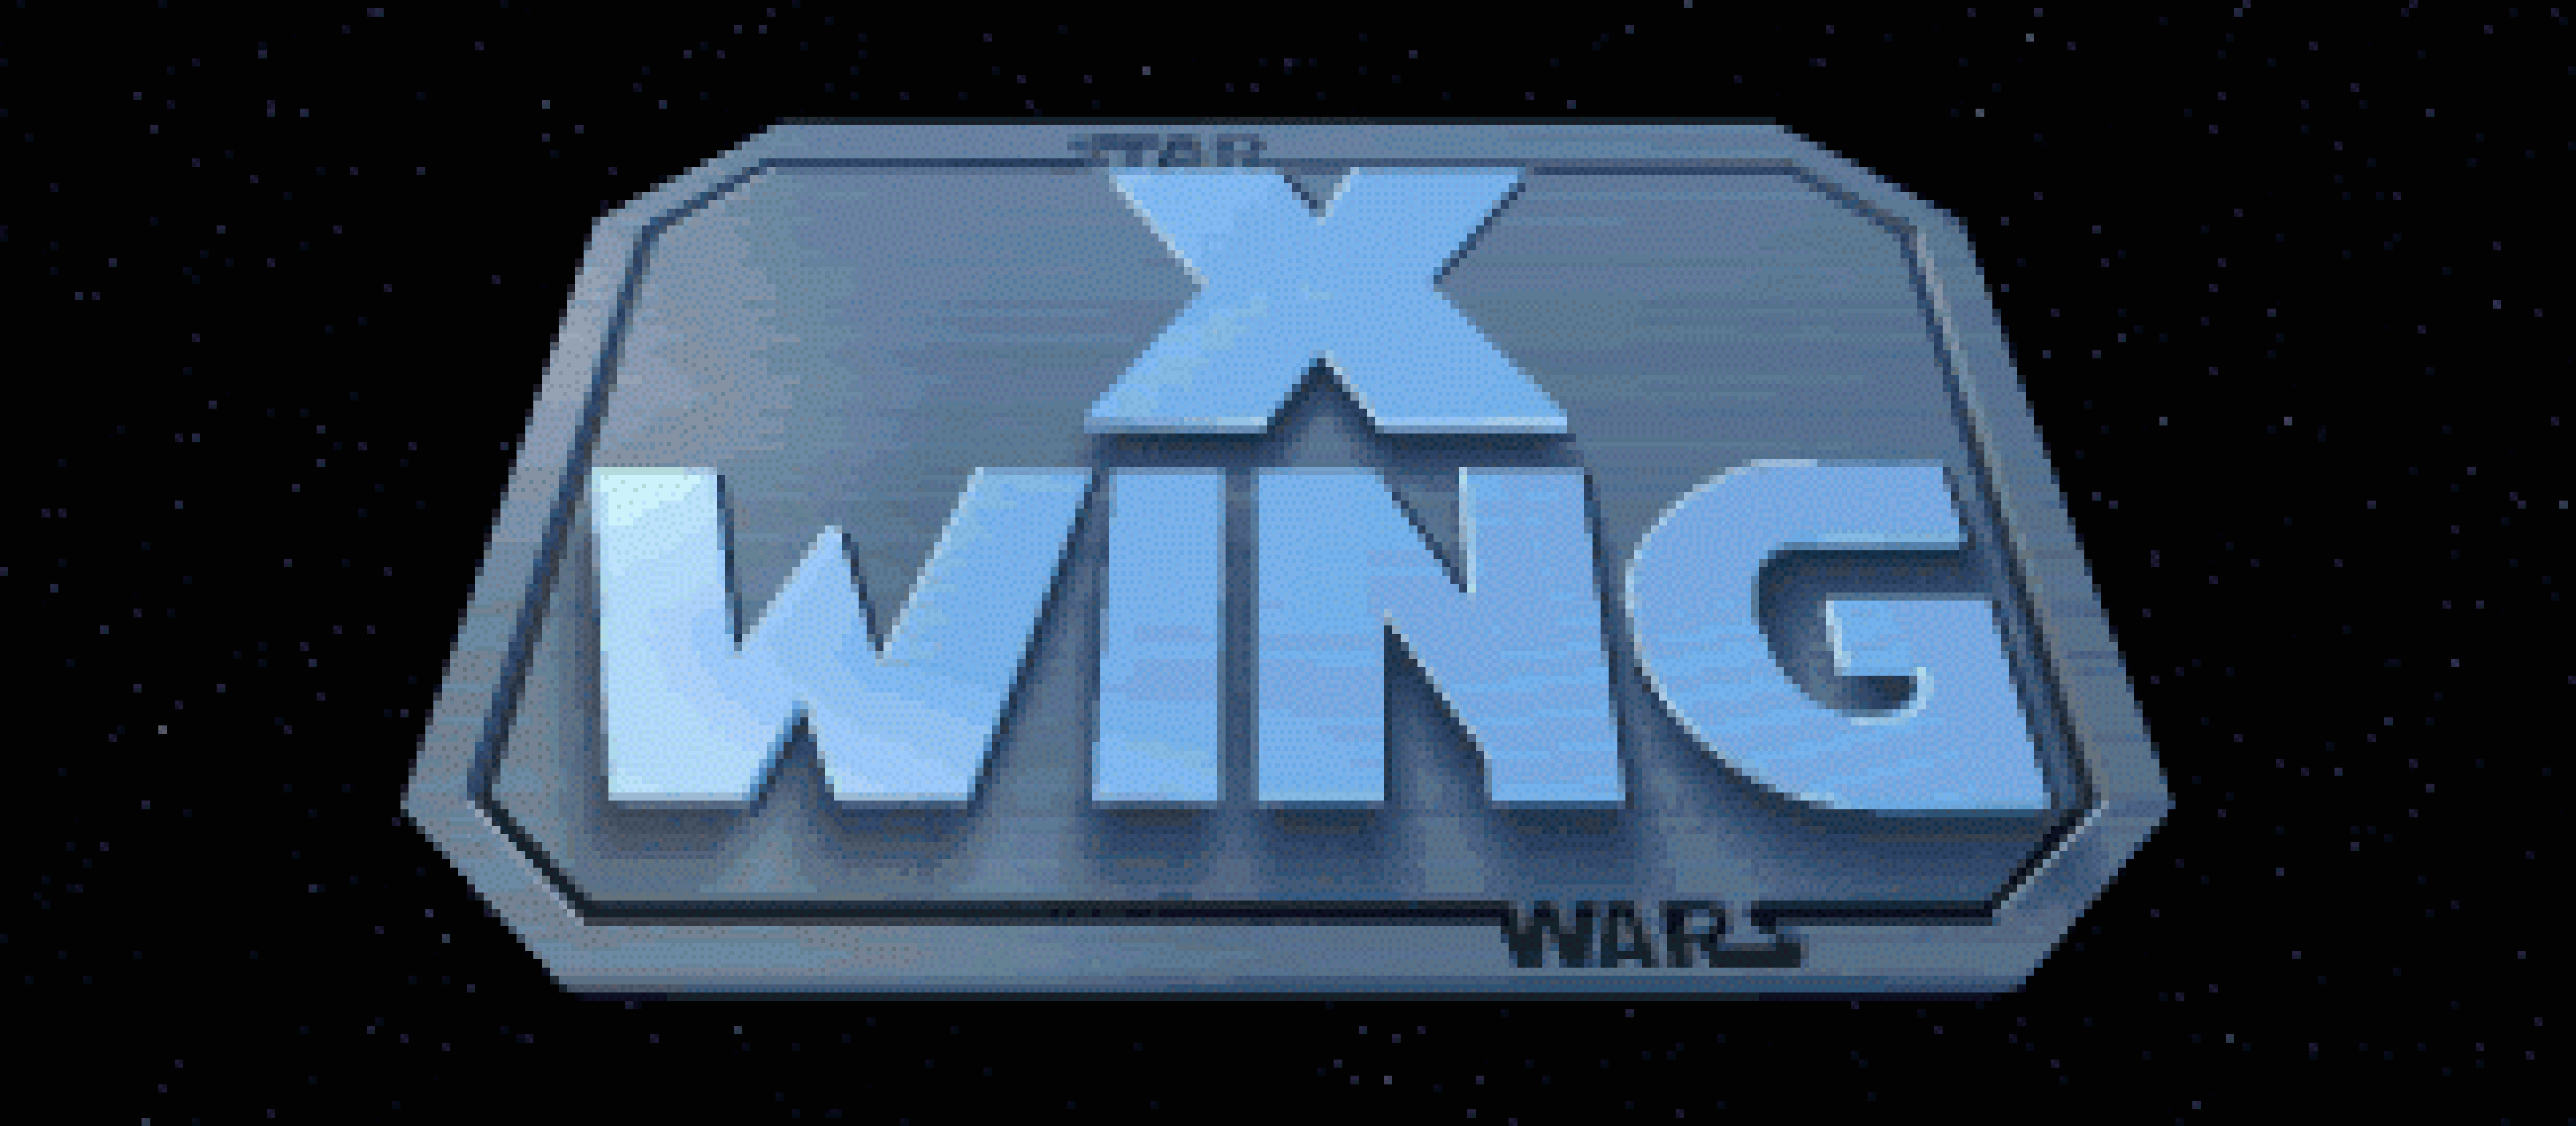 The title screen of Star Wars: X-Wing.